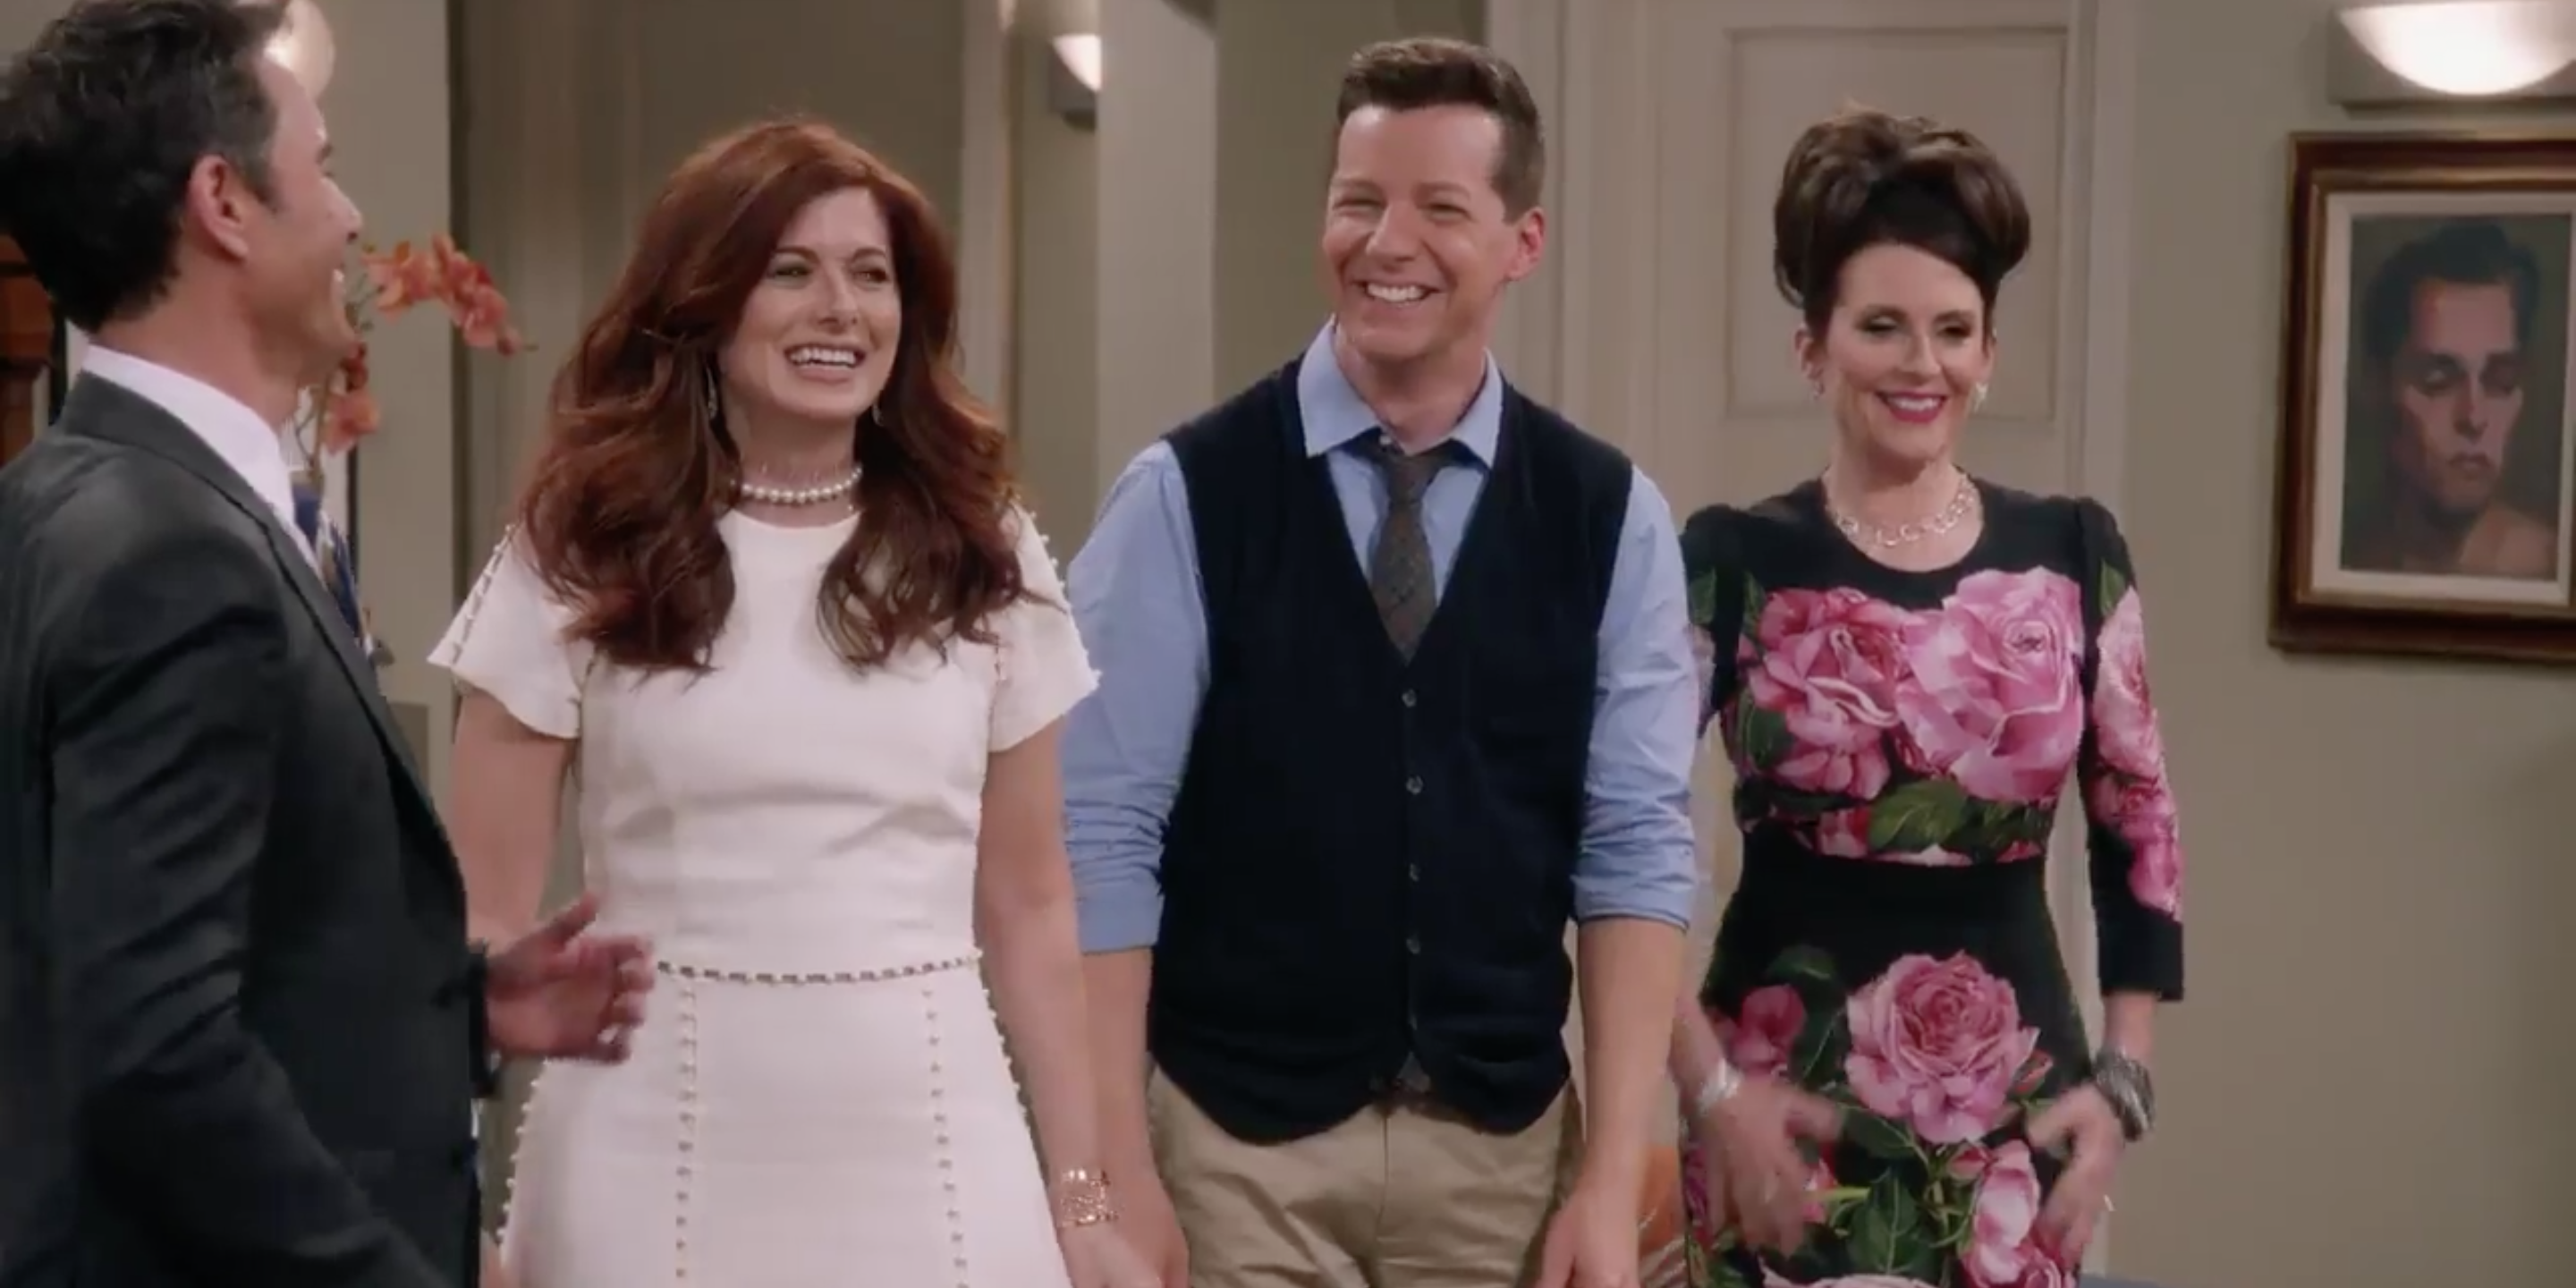 Eric McCormack Debra Messing, Megan Mullally, Sean Hayes in Will & Grace revival